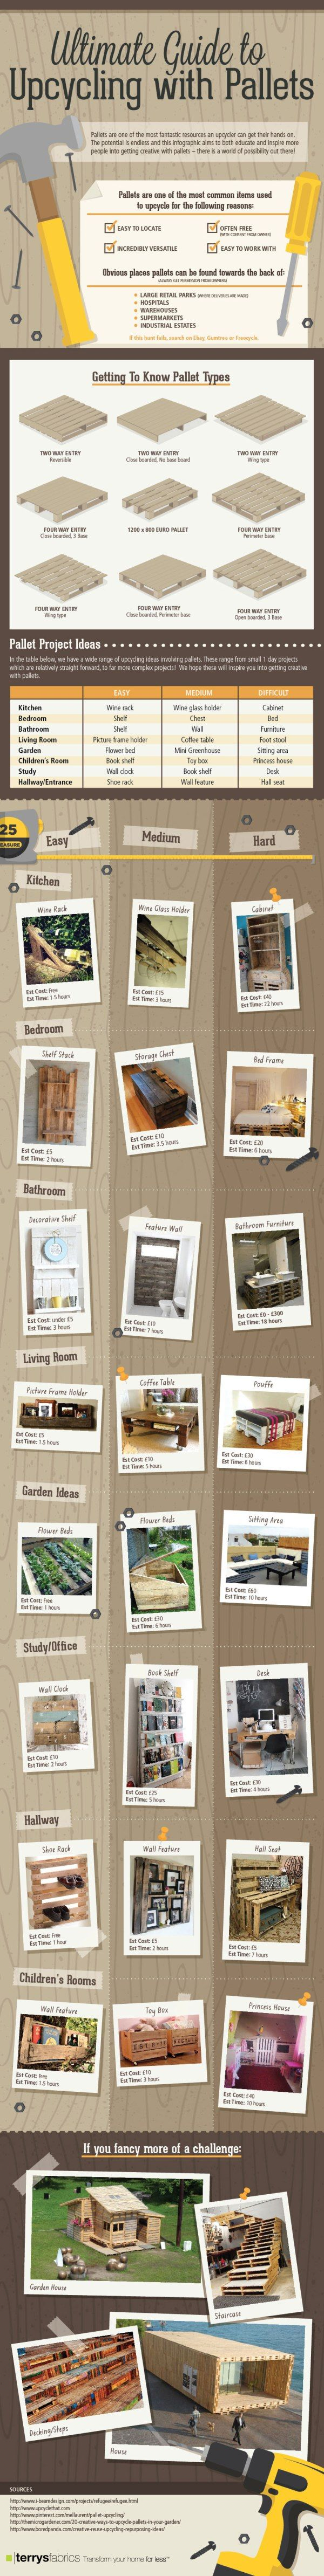 Ultimate Guide to Upcycling with Pallets | 1001 Pallets